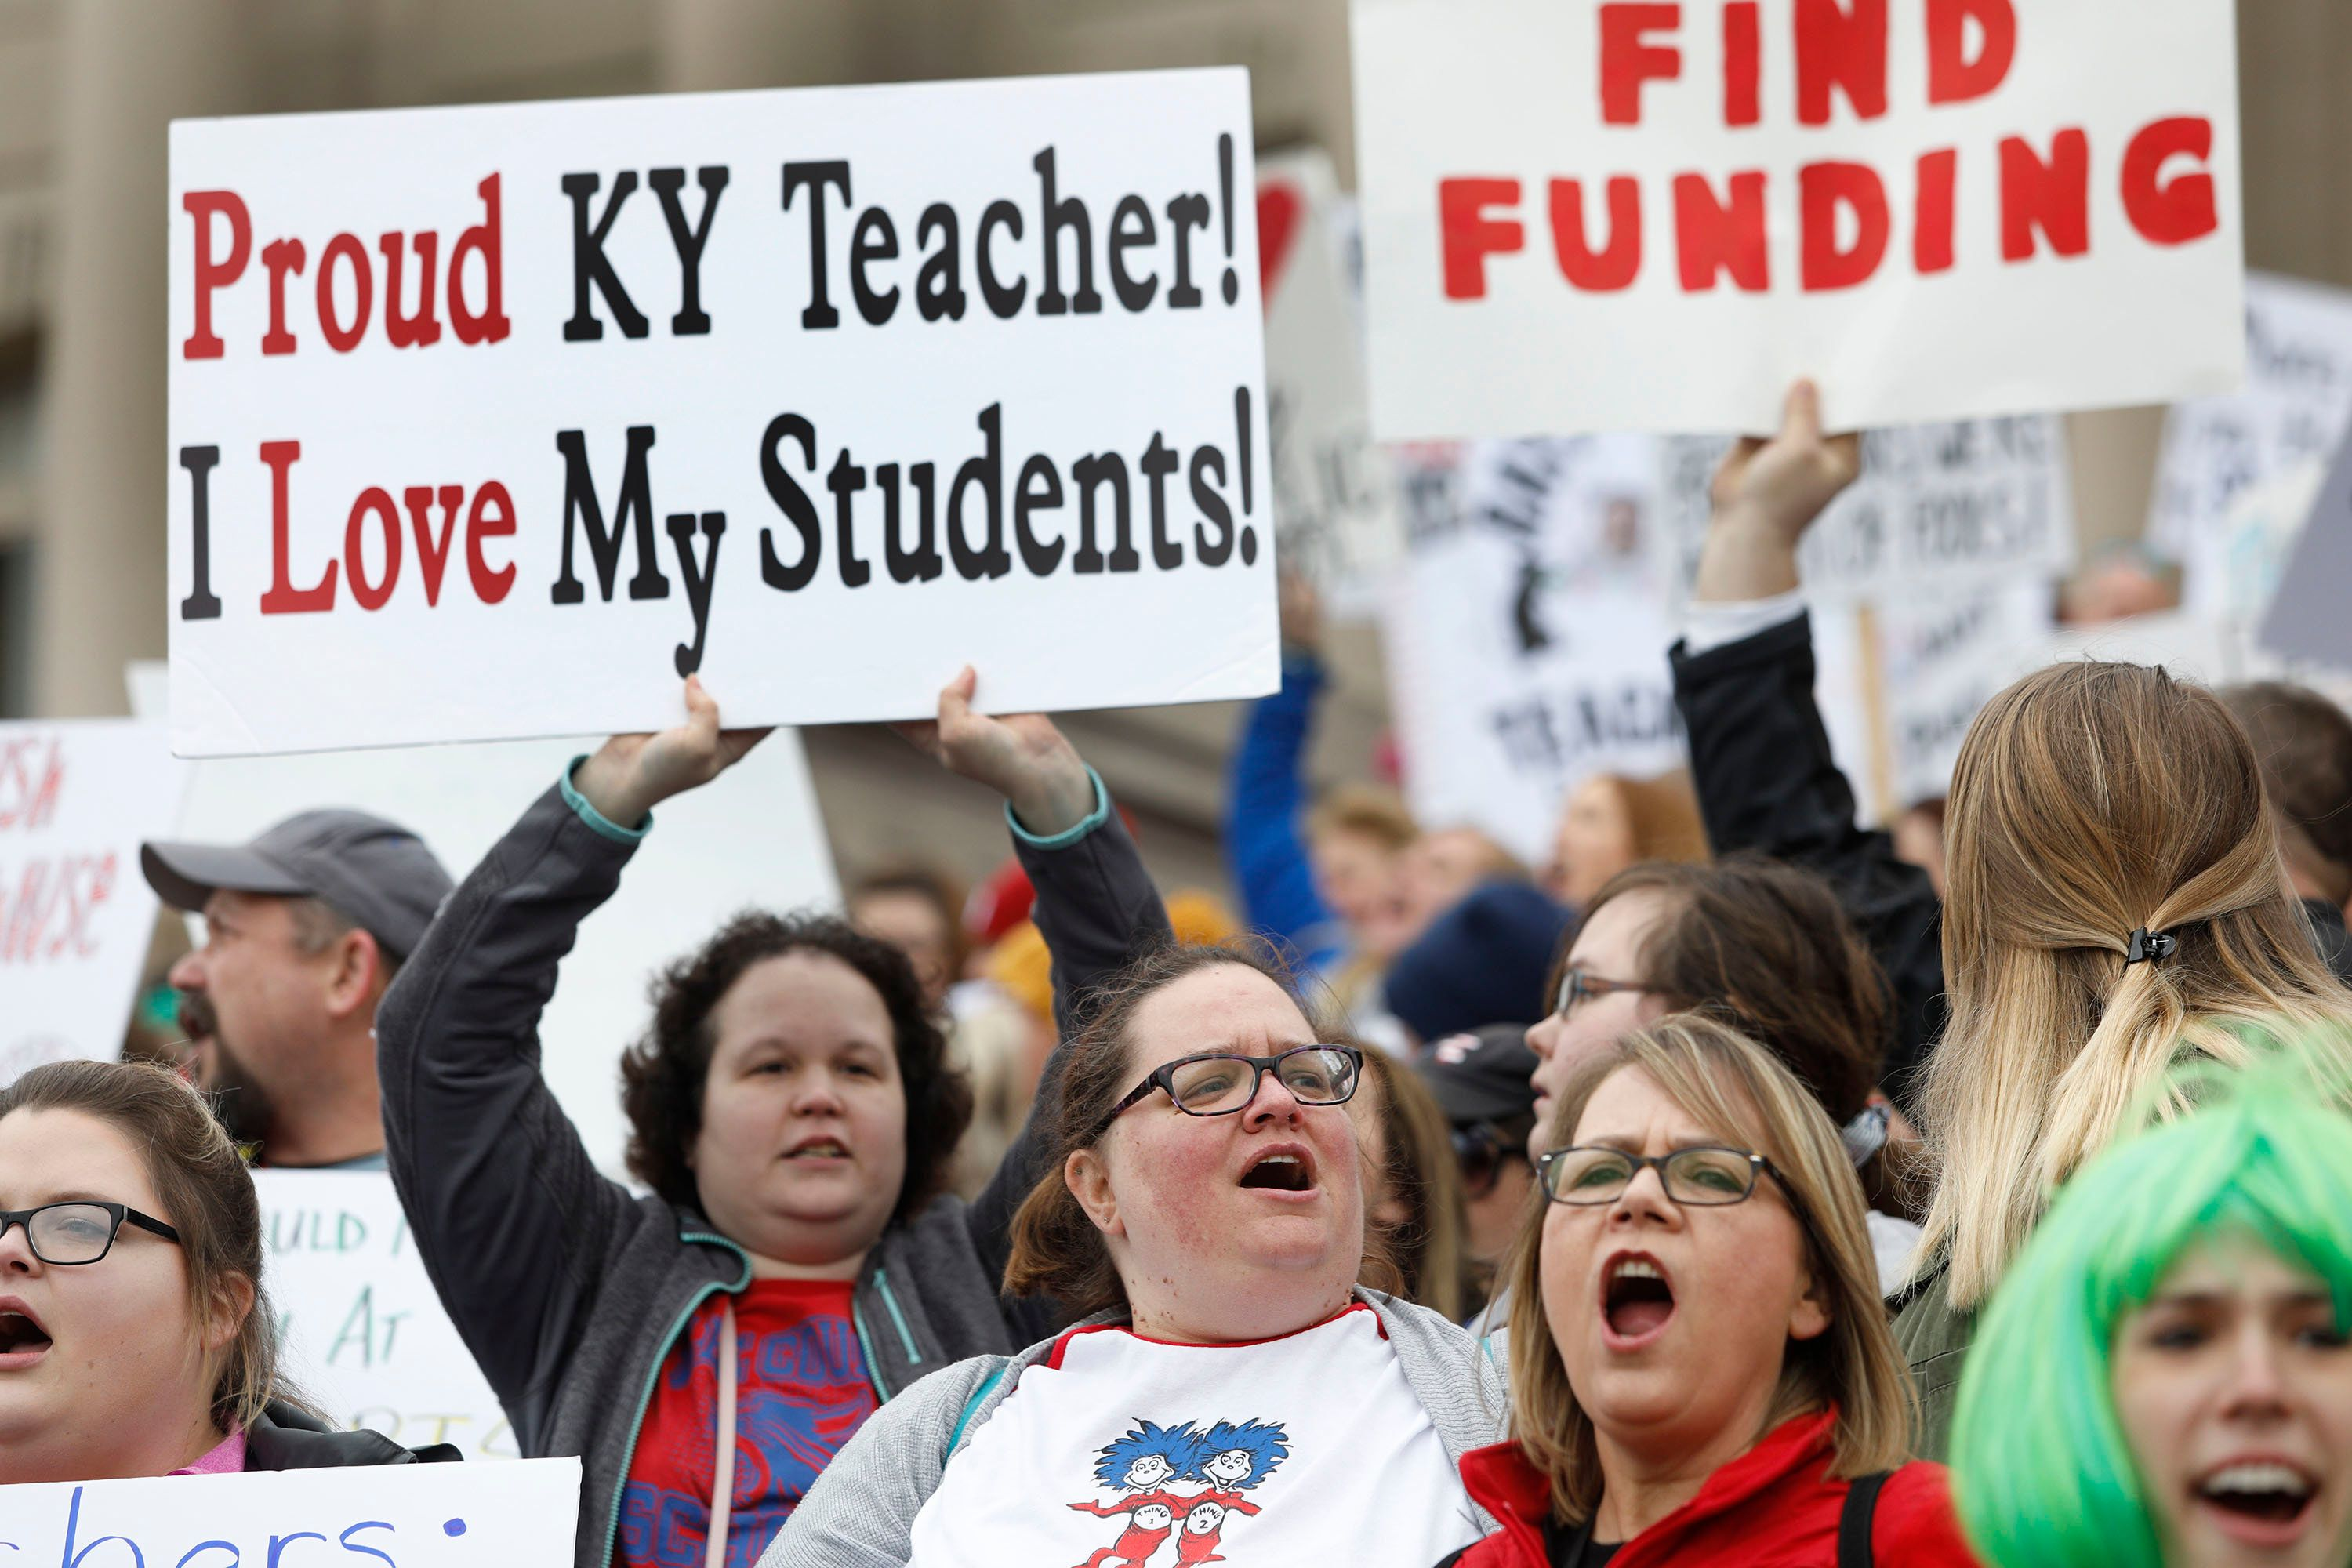 FRANKFORT, KY - APRIL 2: Public school teachers and their supporters protest against a pension reform bill at the Kentucky State Capitol April 2, 2018 in Frankfort, Kentucky. The teachers are calling for higher wages and are demanding that Kentucky Gov. Matt Bevin veto a bill that overhauls their pension plan. (Photo by Bill Pugliano/Getty Images)